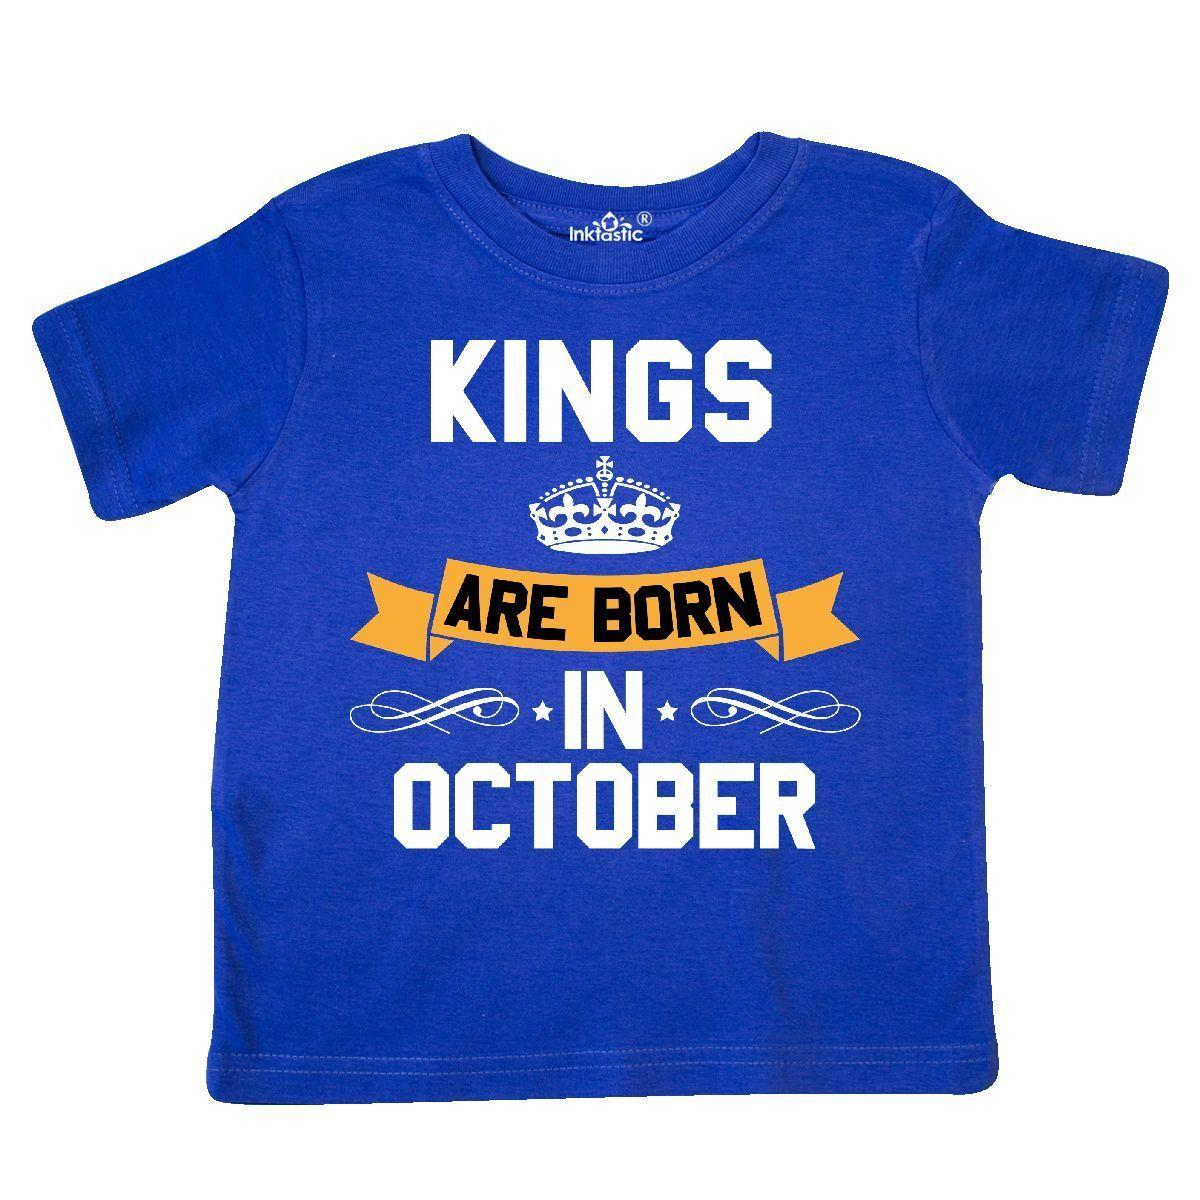 1fc90294e Inktastic Kings Are Born In October Toddler T Shirt Birthdays Adult King  Month Awesome T Shirts Designs Cool Funny Shirts From Marcusdover, $11.01|  DHgate.